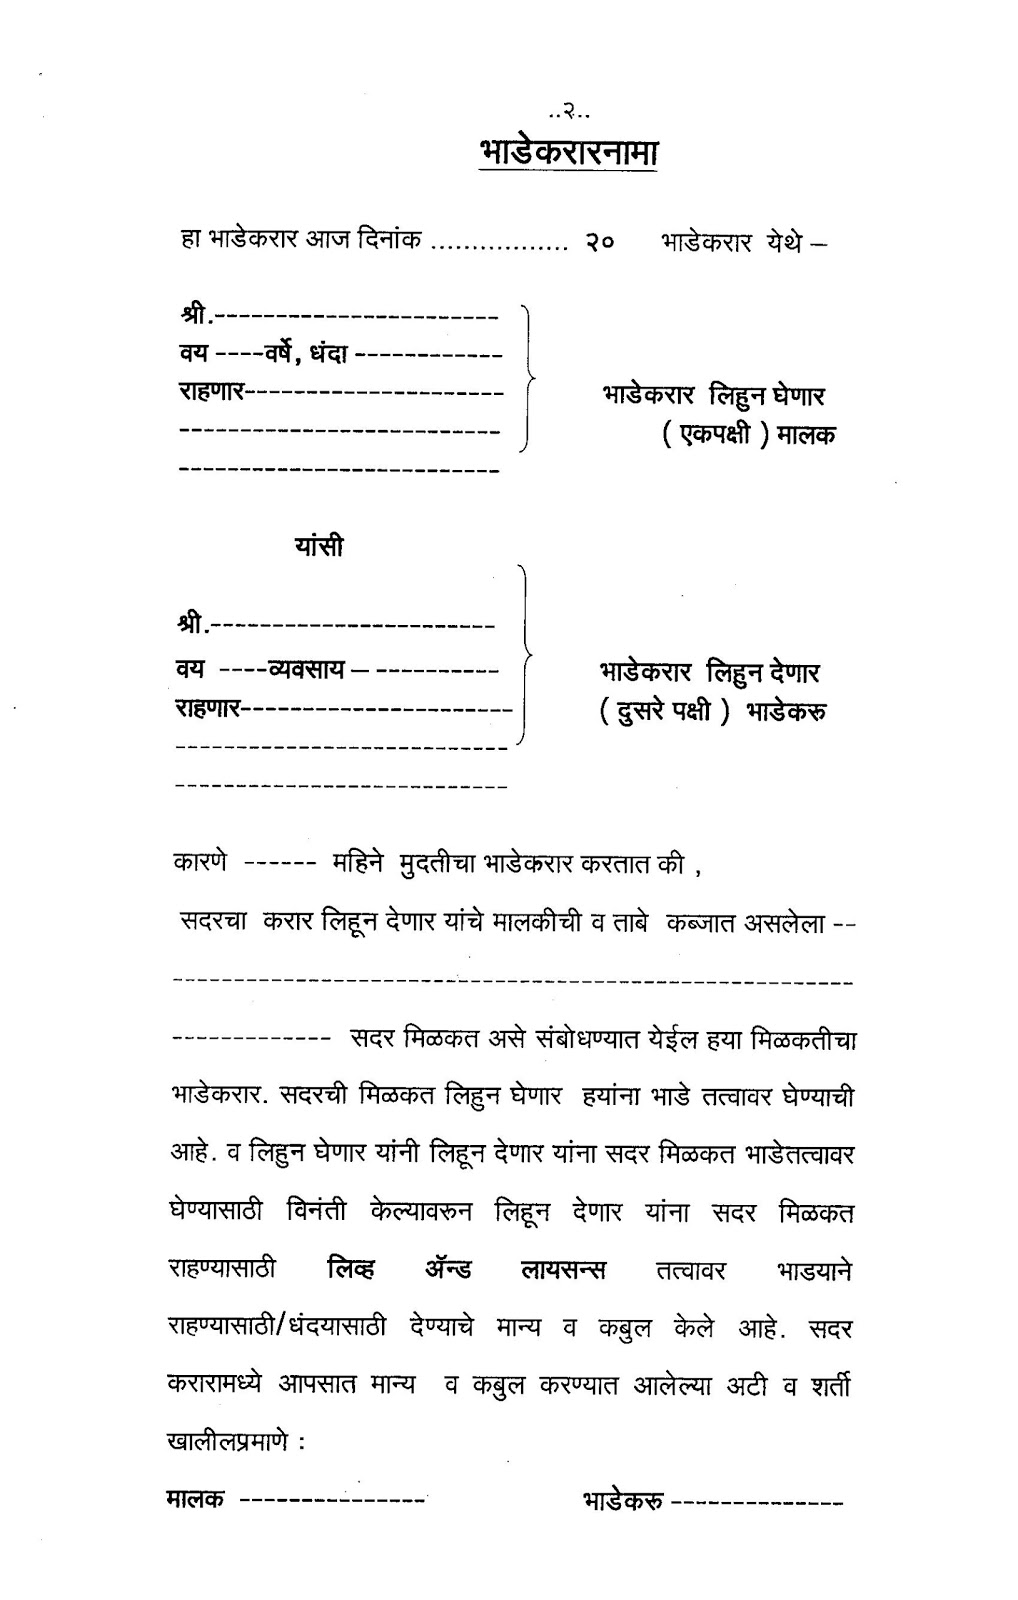 Lease Agreement Format In Marathi Ghanshyam Solanke